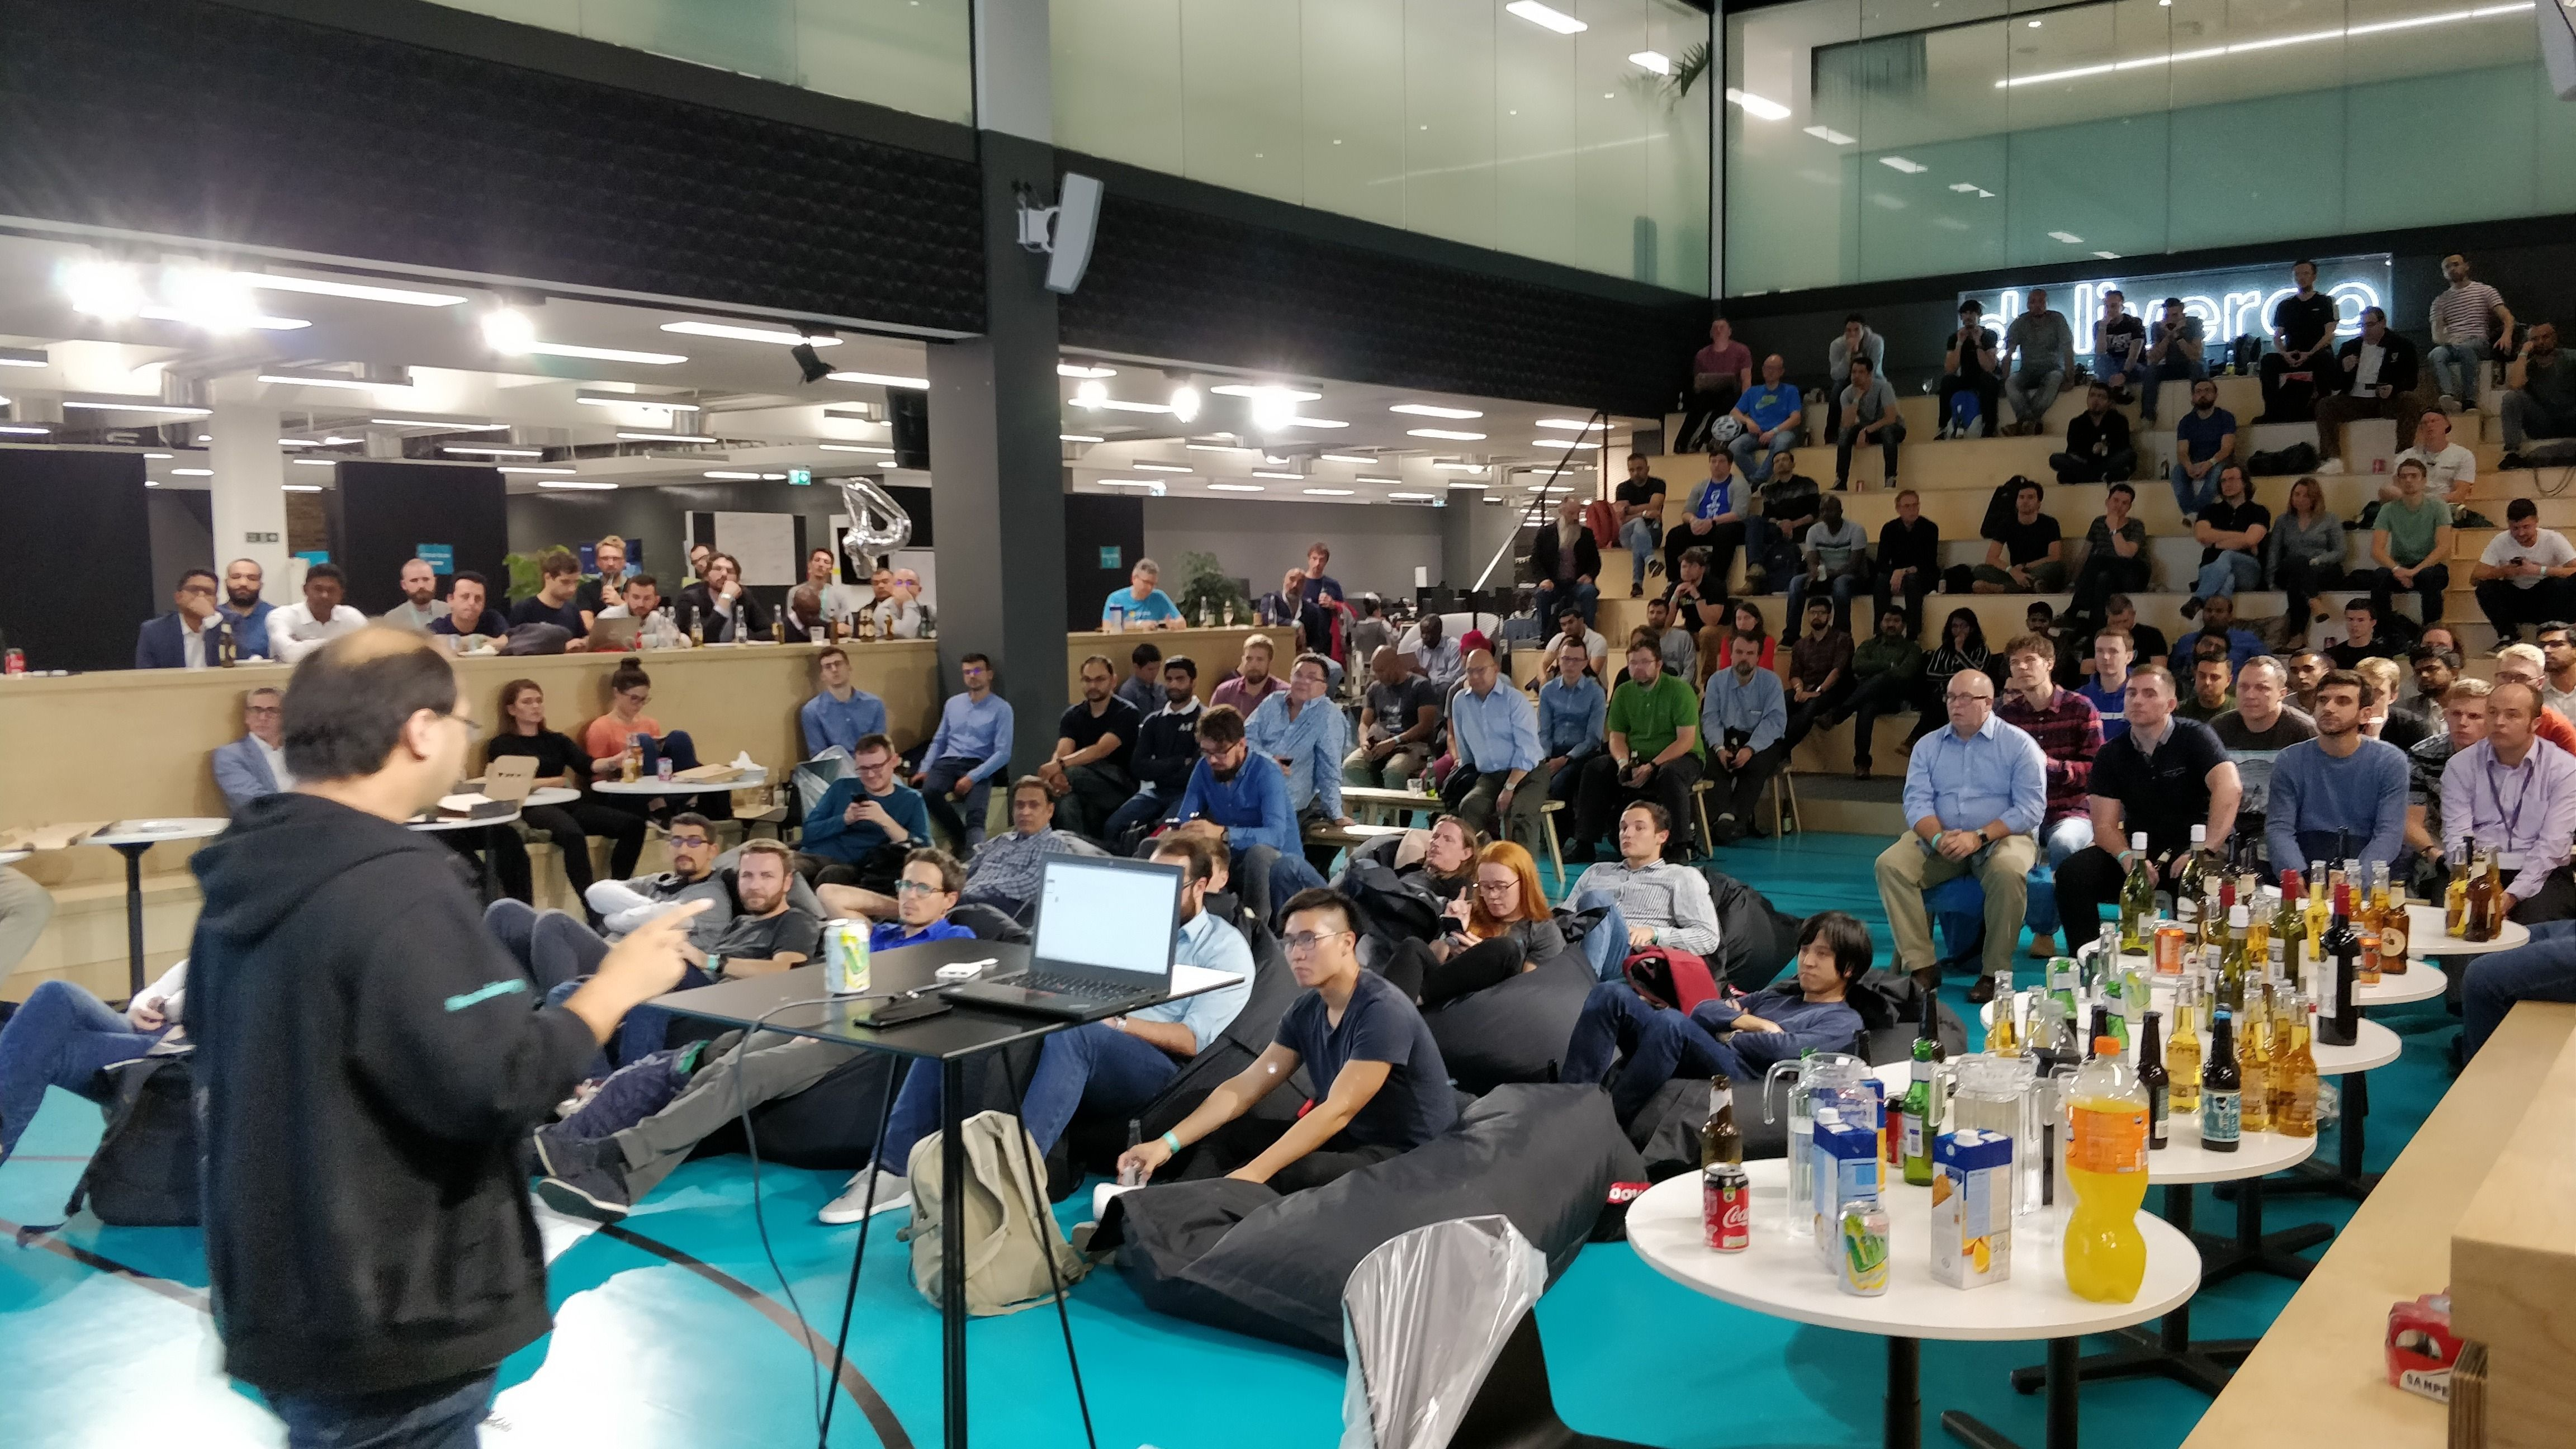 London μServices (Microservices) User Group